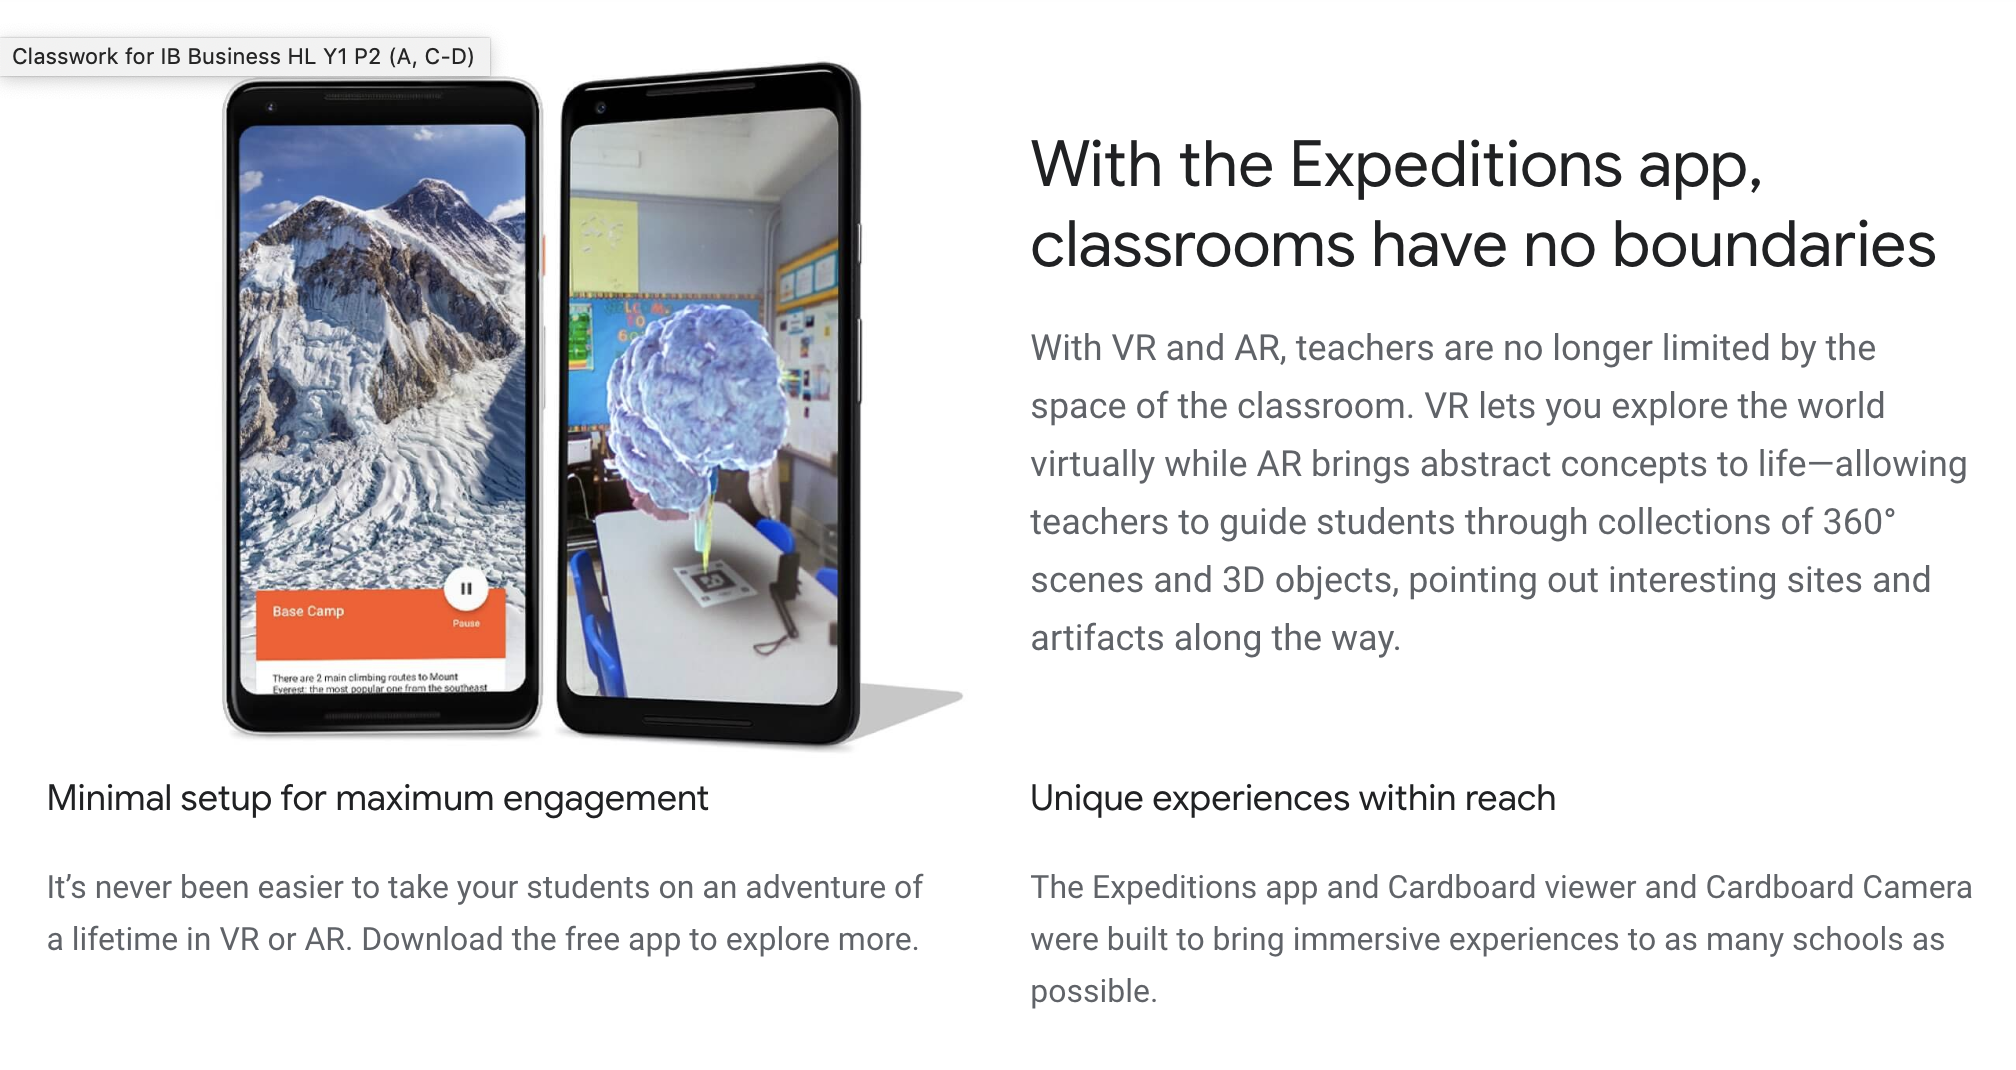 Google Expedition - This brings 360° immersive experiences and virtual reality field trips into the classroom as a learning experience that drops jaws. I am a novice in implementing a tool like this and would love to learn more what virtual reality and augmented reality could mean for a classroom.